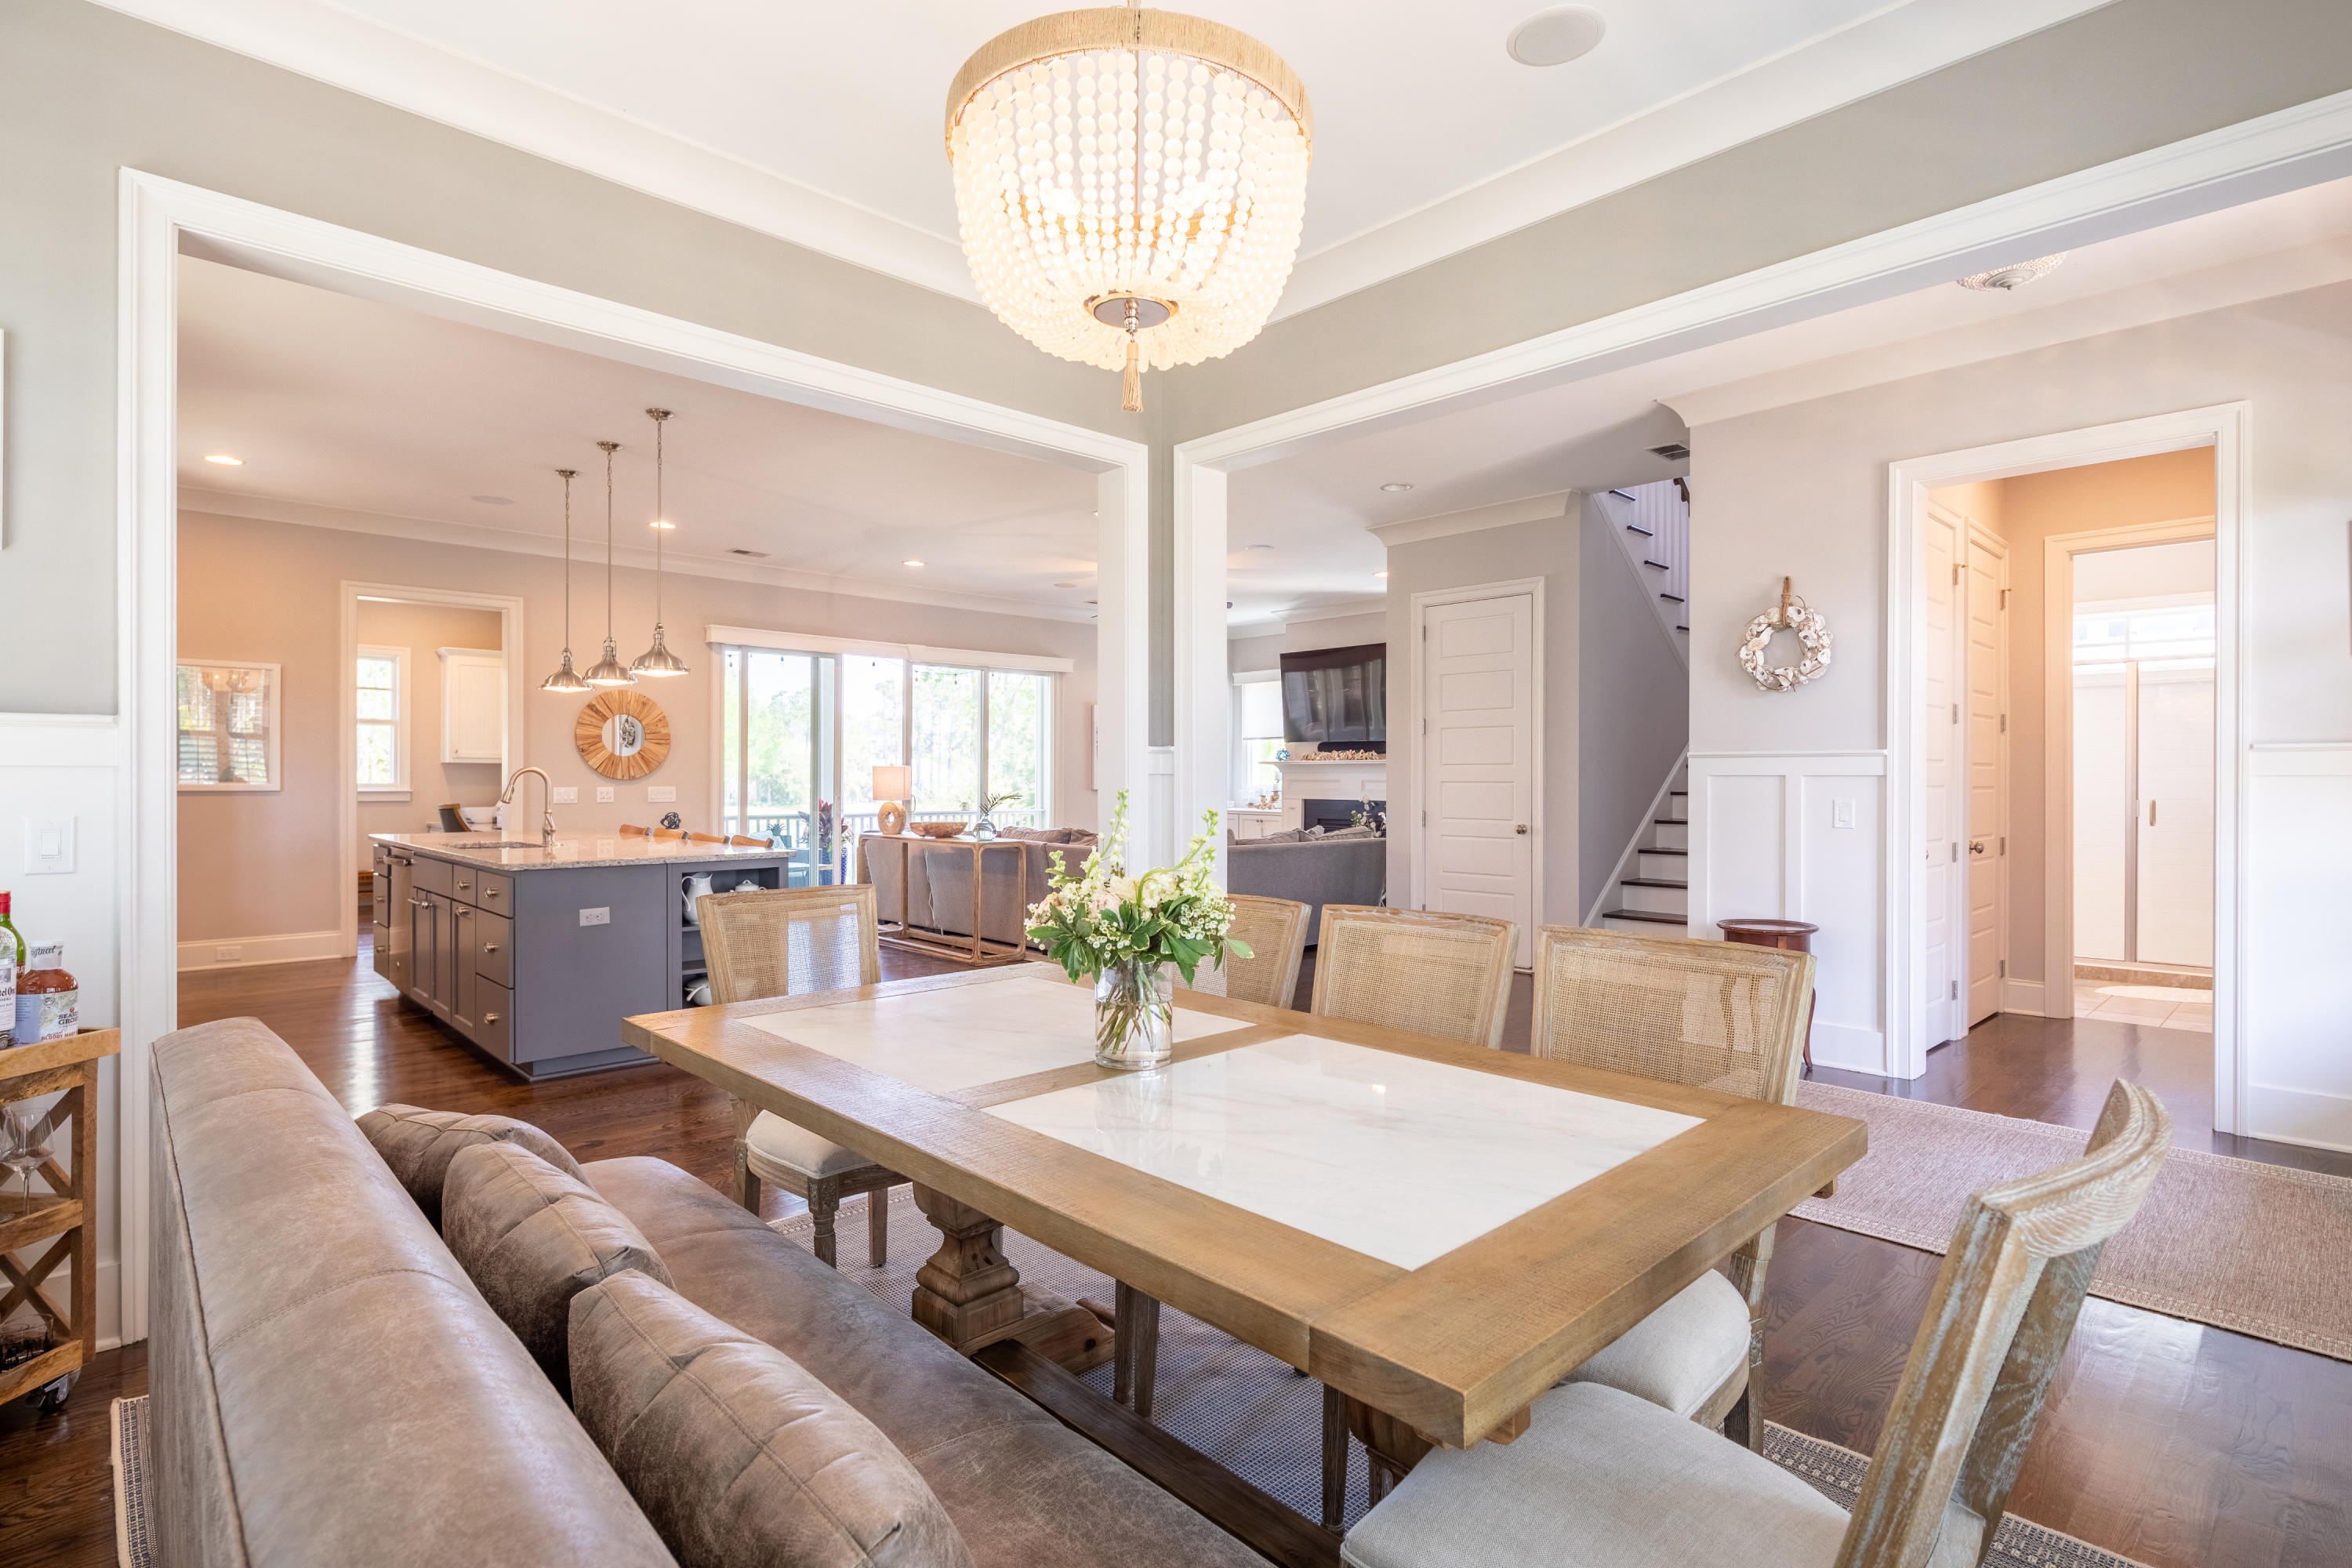 Rivertowne Country Club Homes For Sale - 1633 Rivertowne Country Club, Mount Pleasant, SC - 26